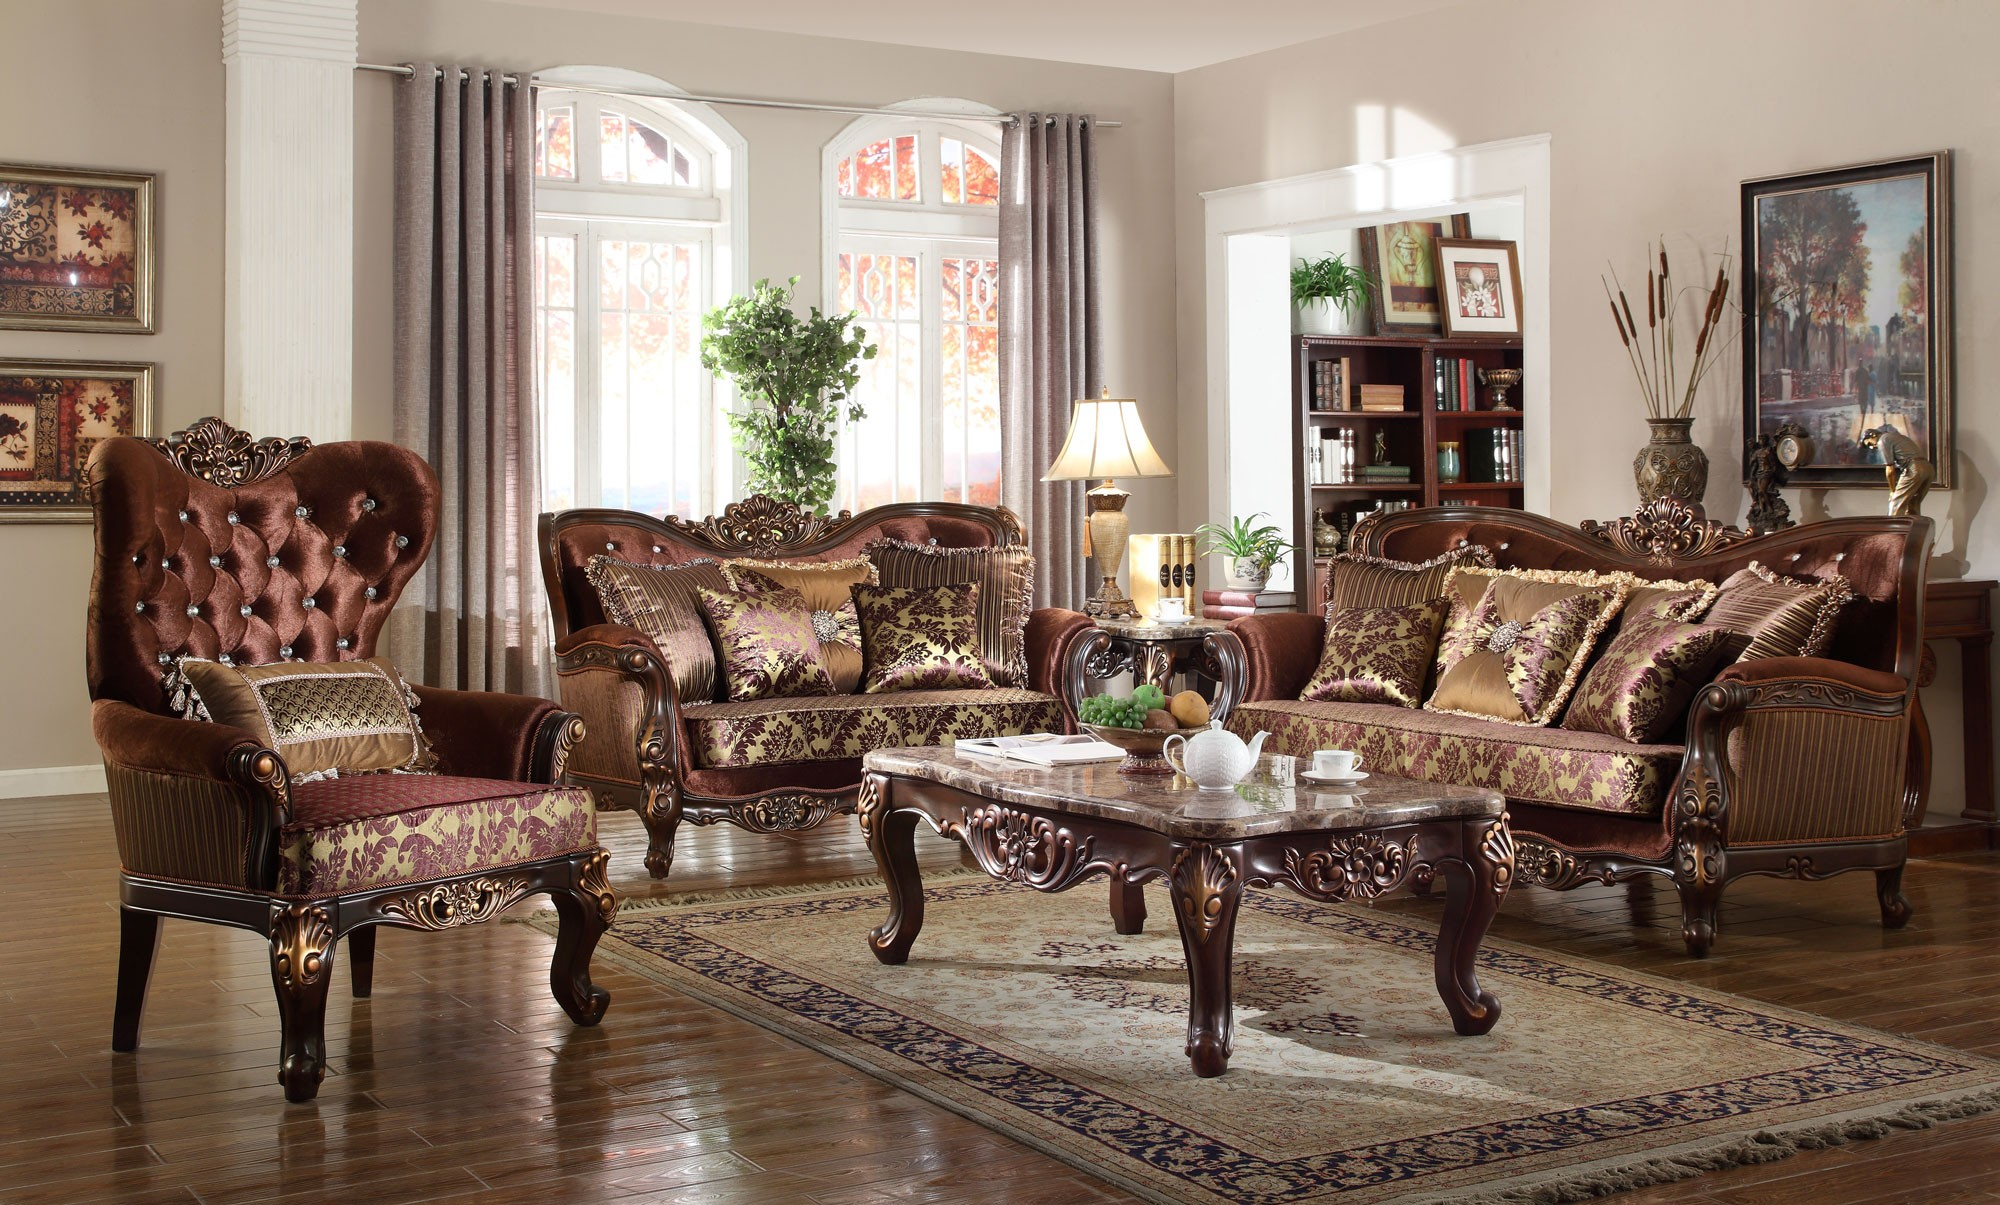 french provincial living rooms room decor ideas with gray furniture set 685 in brown fabric touch to zoom